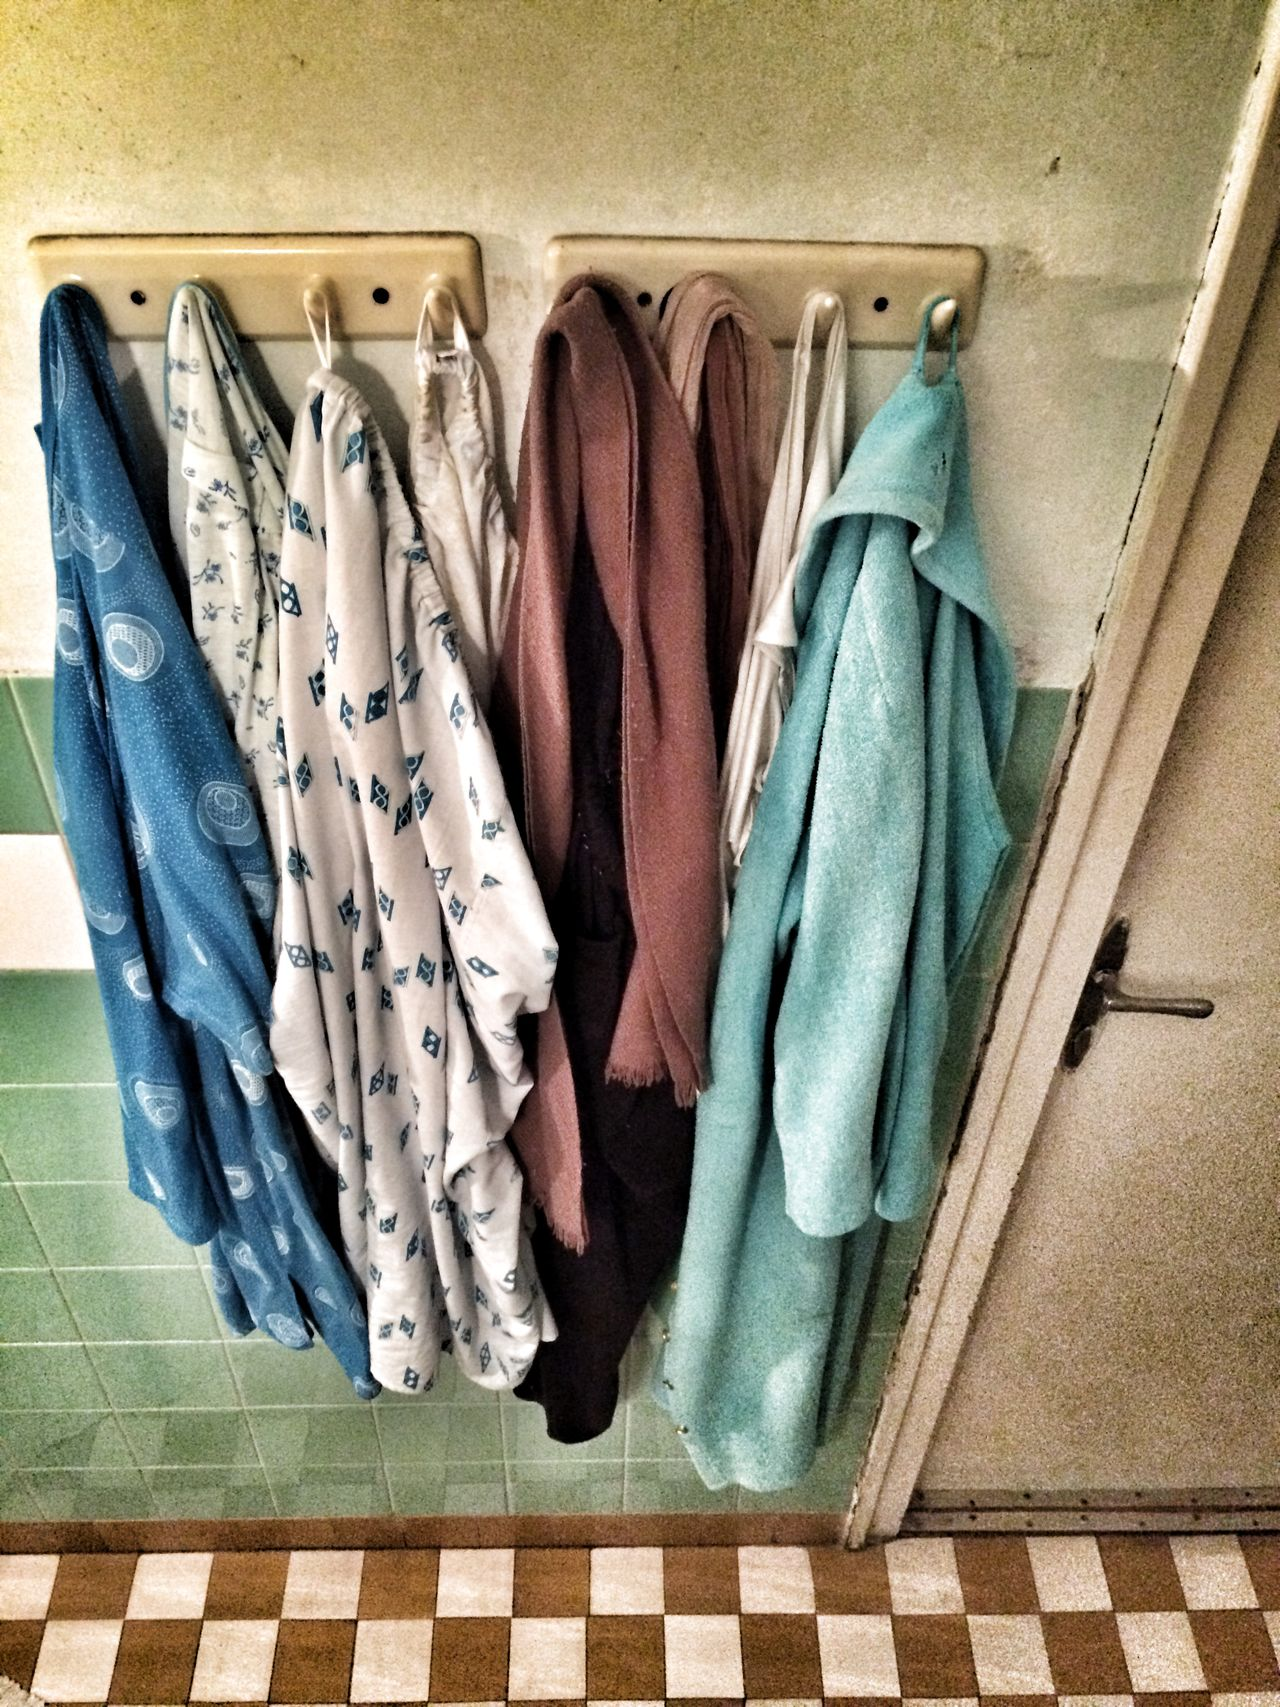 1950's Style Arhaic Bathroom Casual Clothing Door Home Interior Old Clothes Poverty Socialist Realism Variation